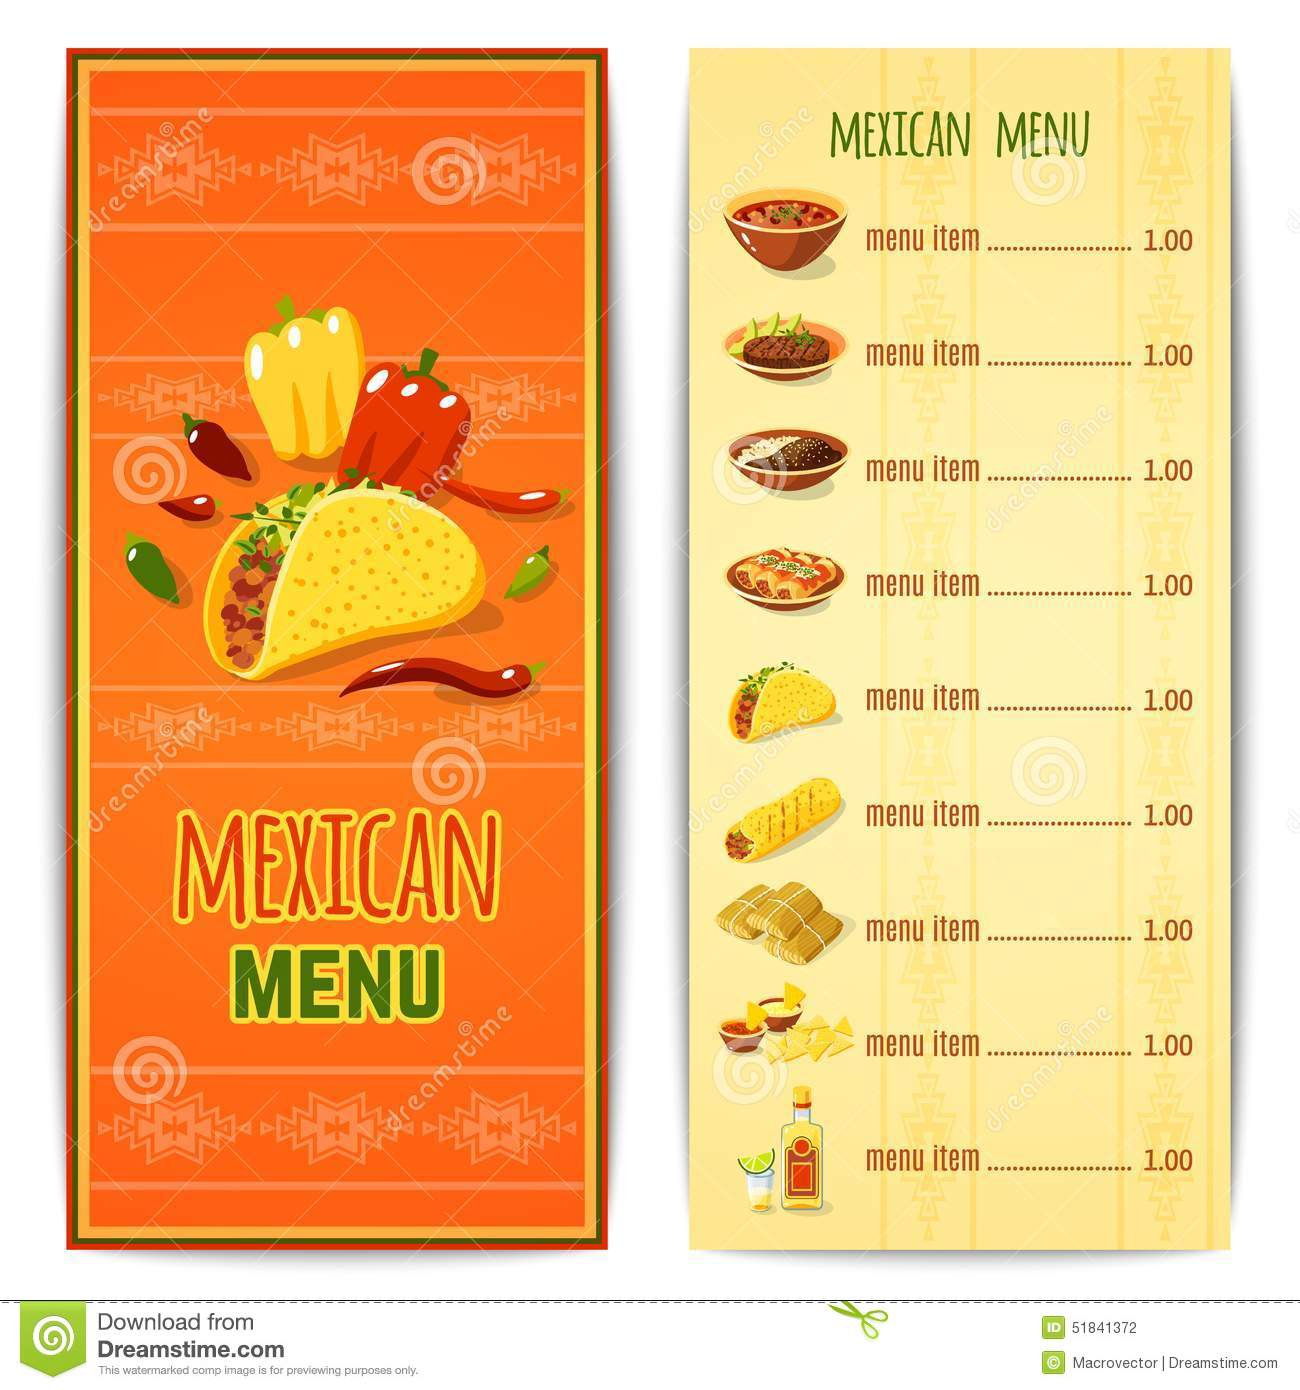 Mexican Food Menu Stock Vector Illustration Of Background 51841372